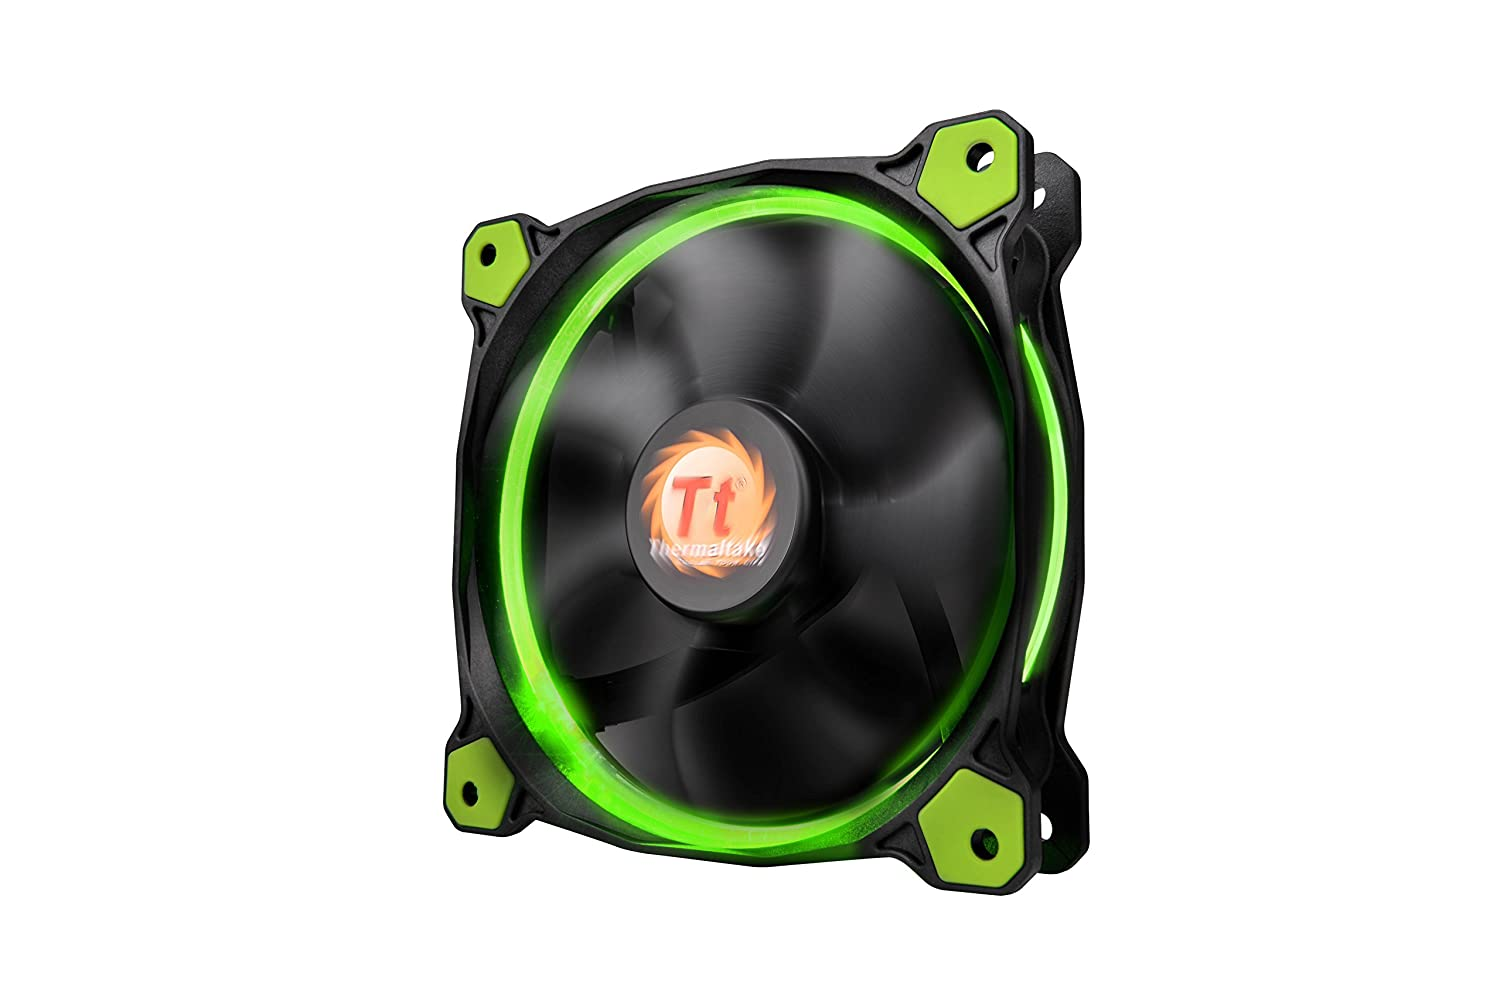 Thermaltake Riing 12 Series High Static Pressure 120mm Circular LED Ring Case/Radiator Fan with Anti-Vibration Mounting System Cooling CL-F038-PL12GR-A Green